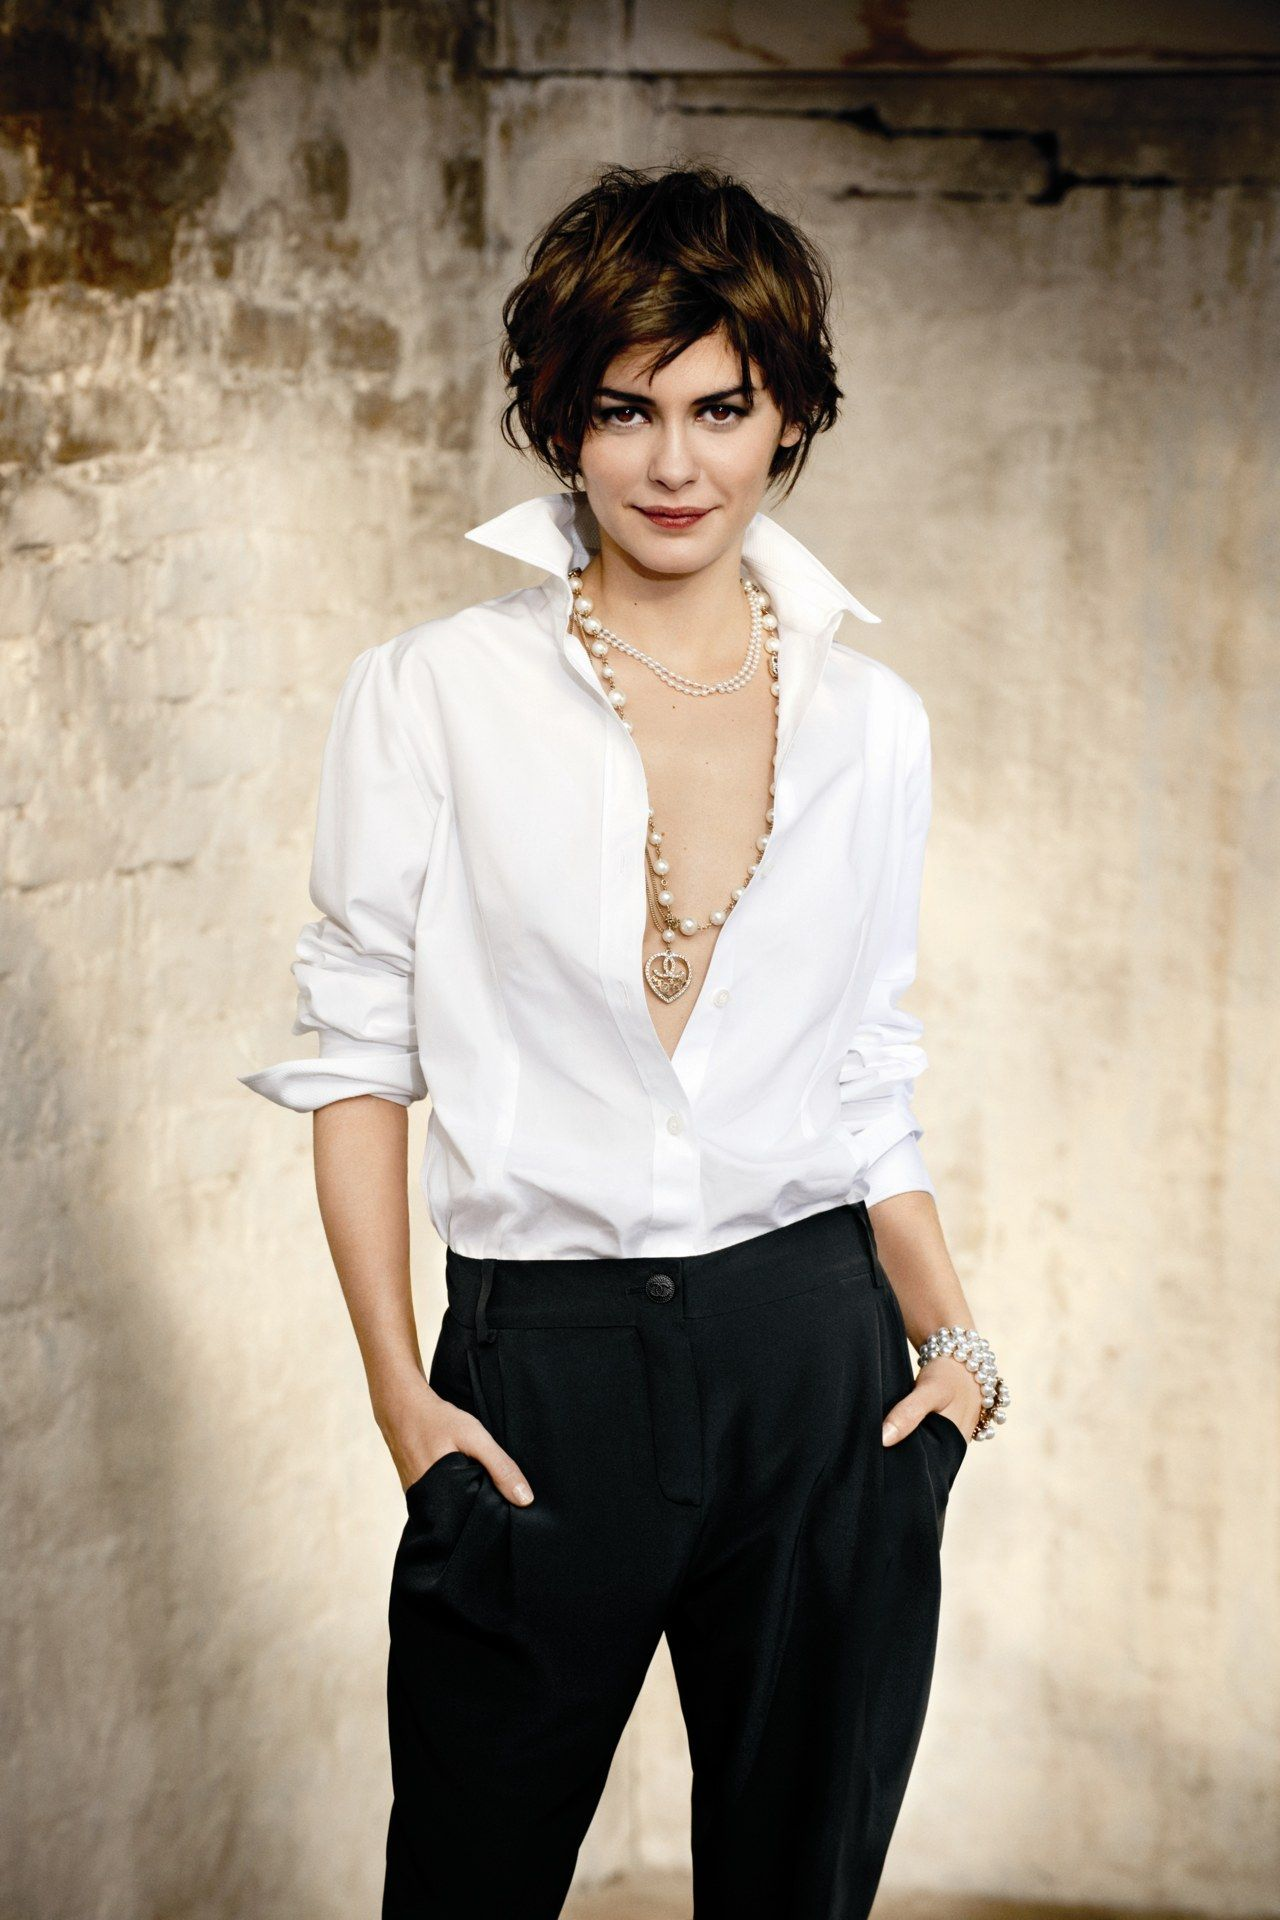 C h a n e l | My Style | Pinterest | Audrey tautou, White shirts and ...